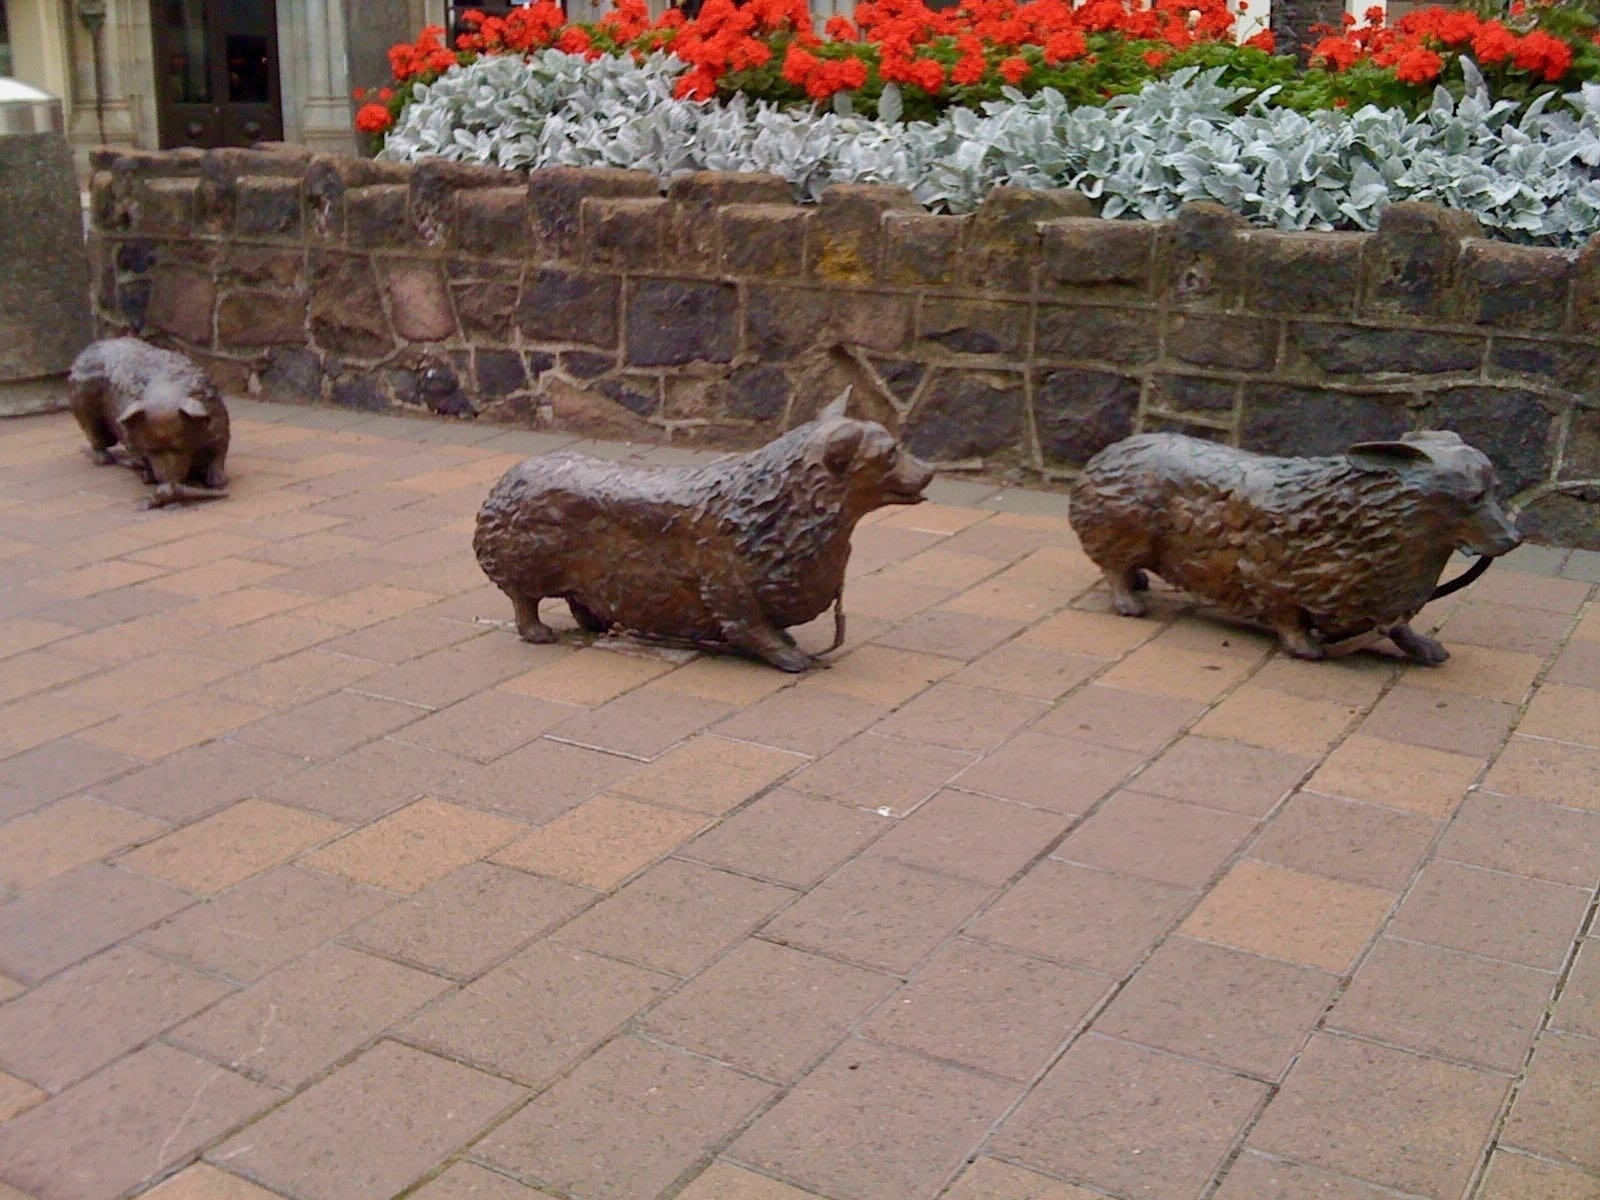 Sculpture of 3 perhaps bronze corgis walking along the street on their own.